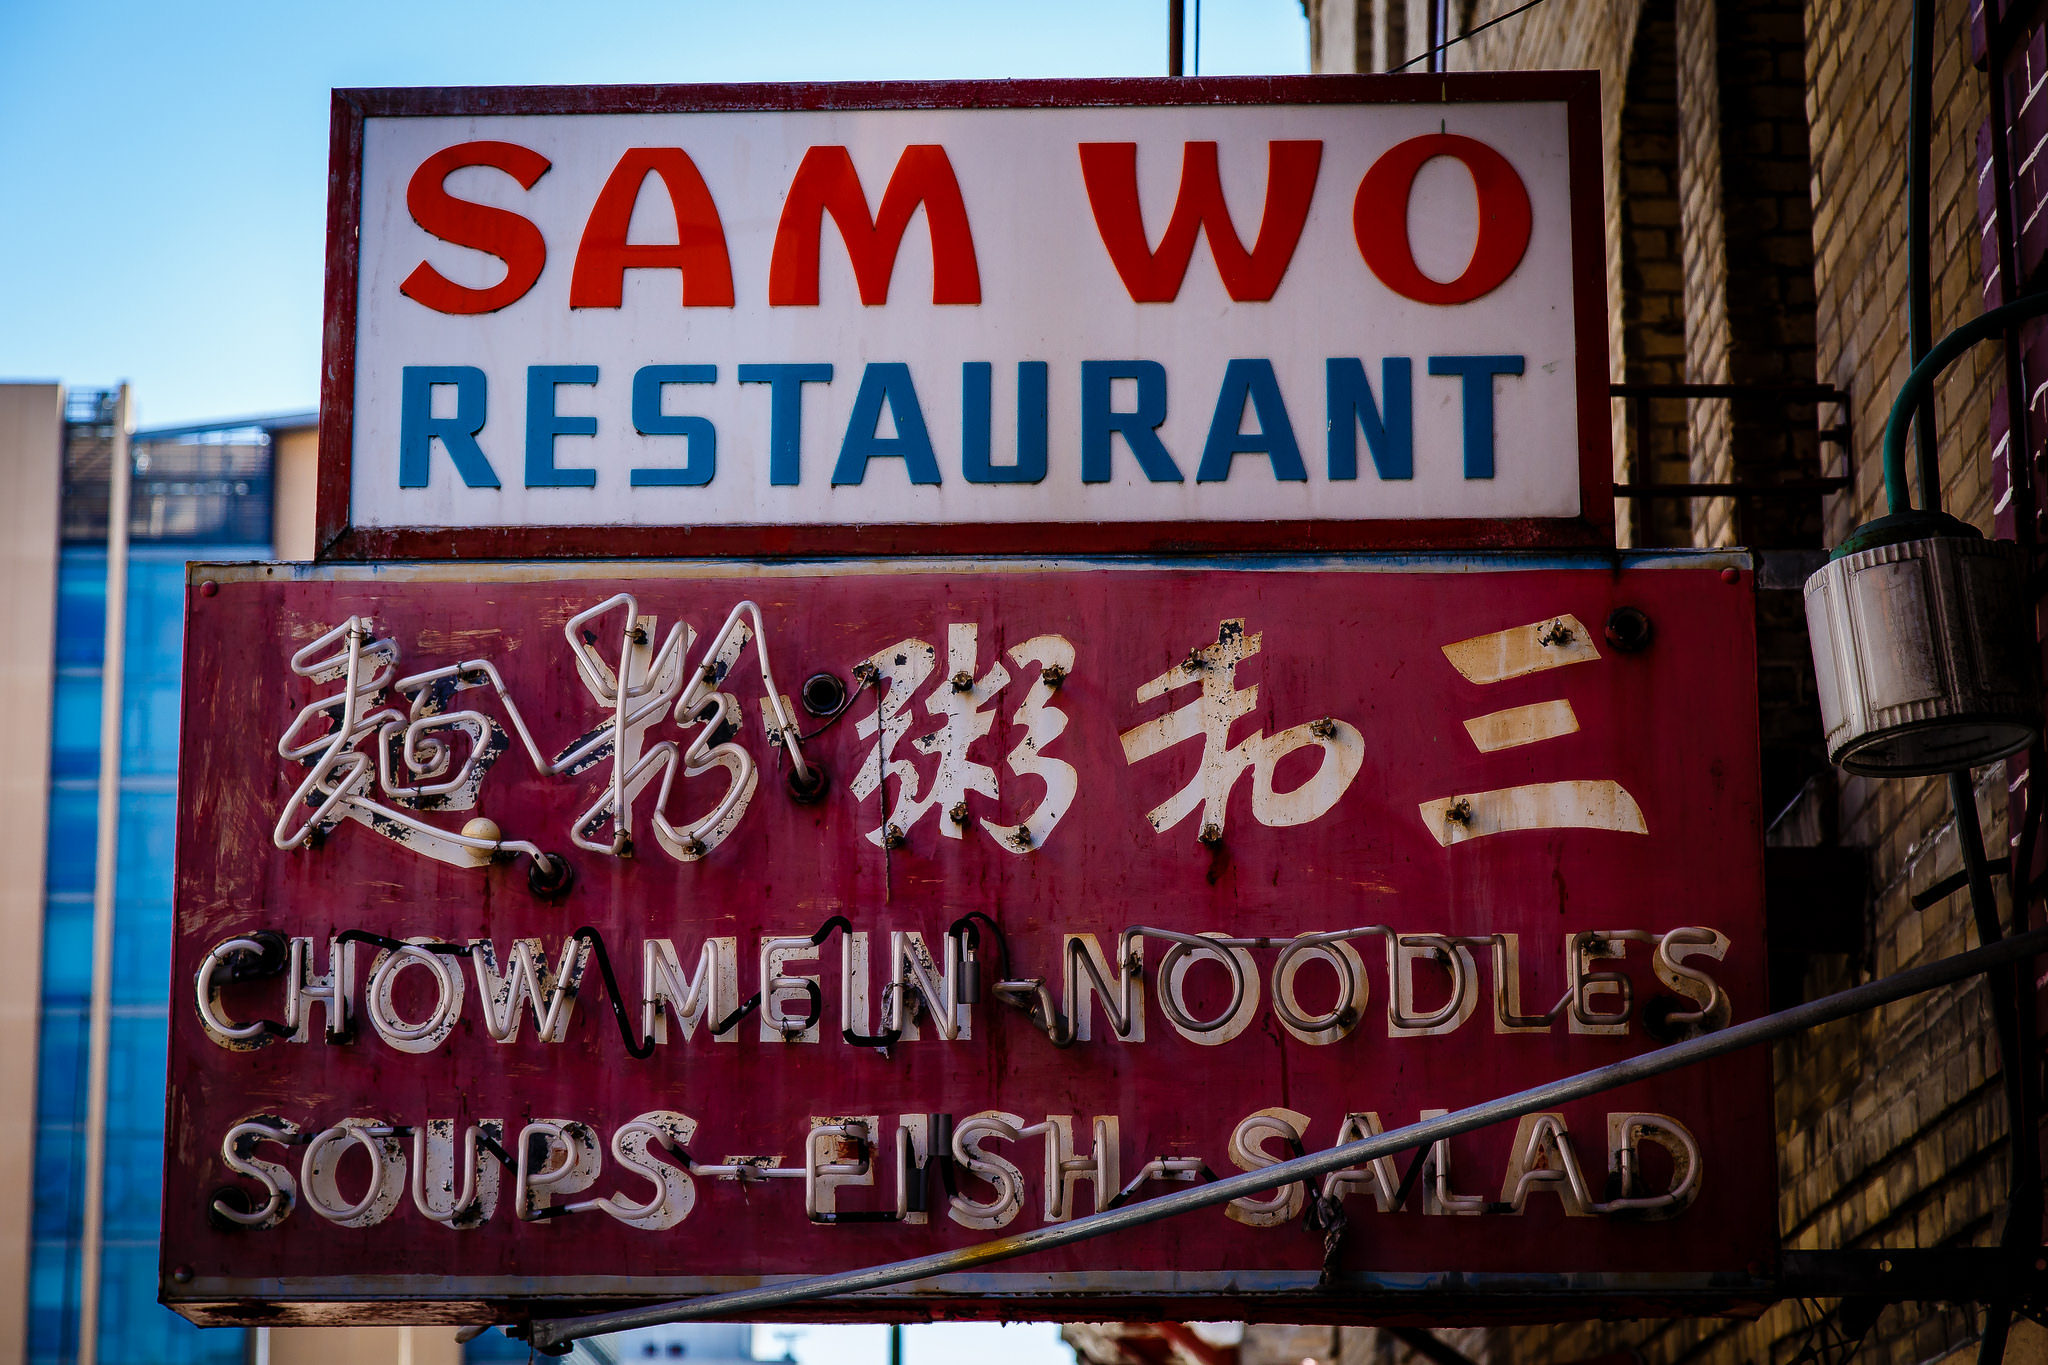 Sam Wo is one of Best Restaurants Chinatown San Francisco